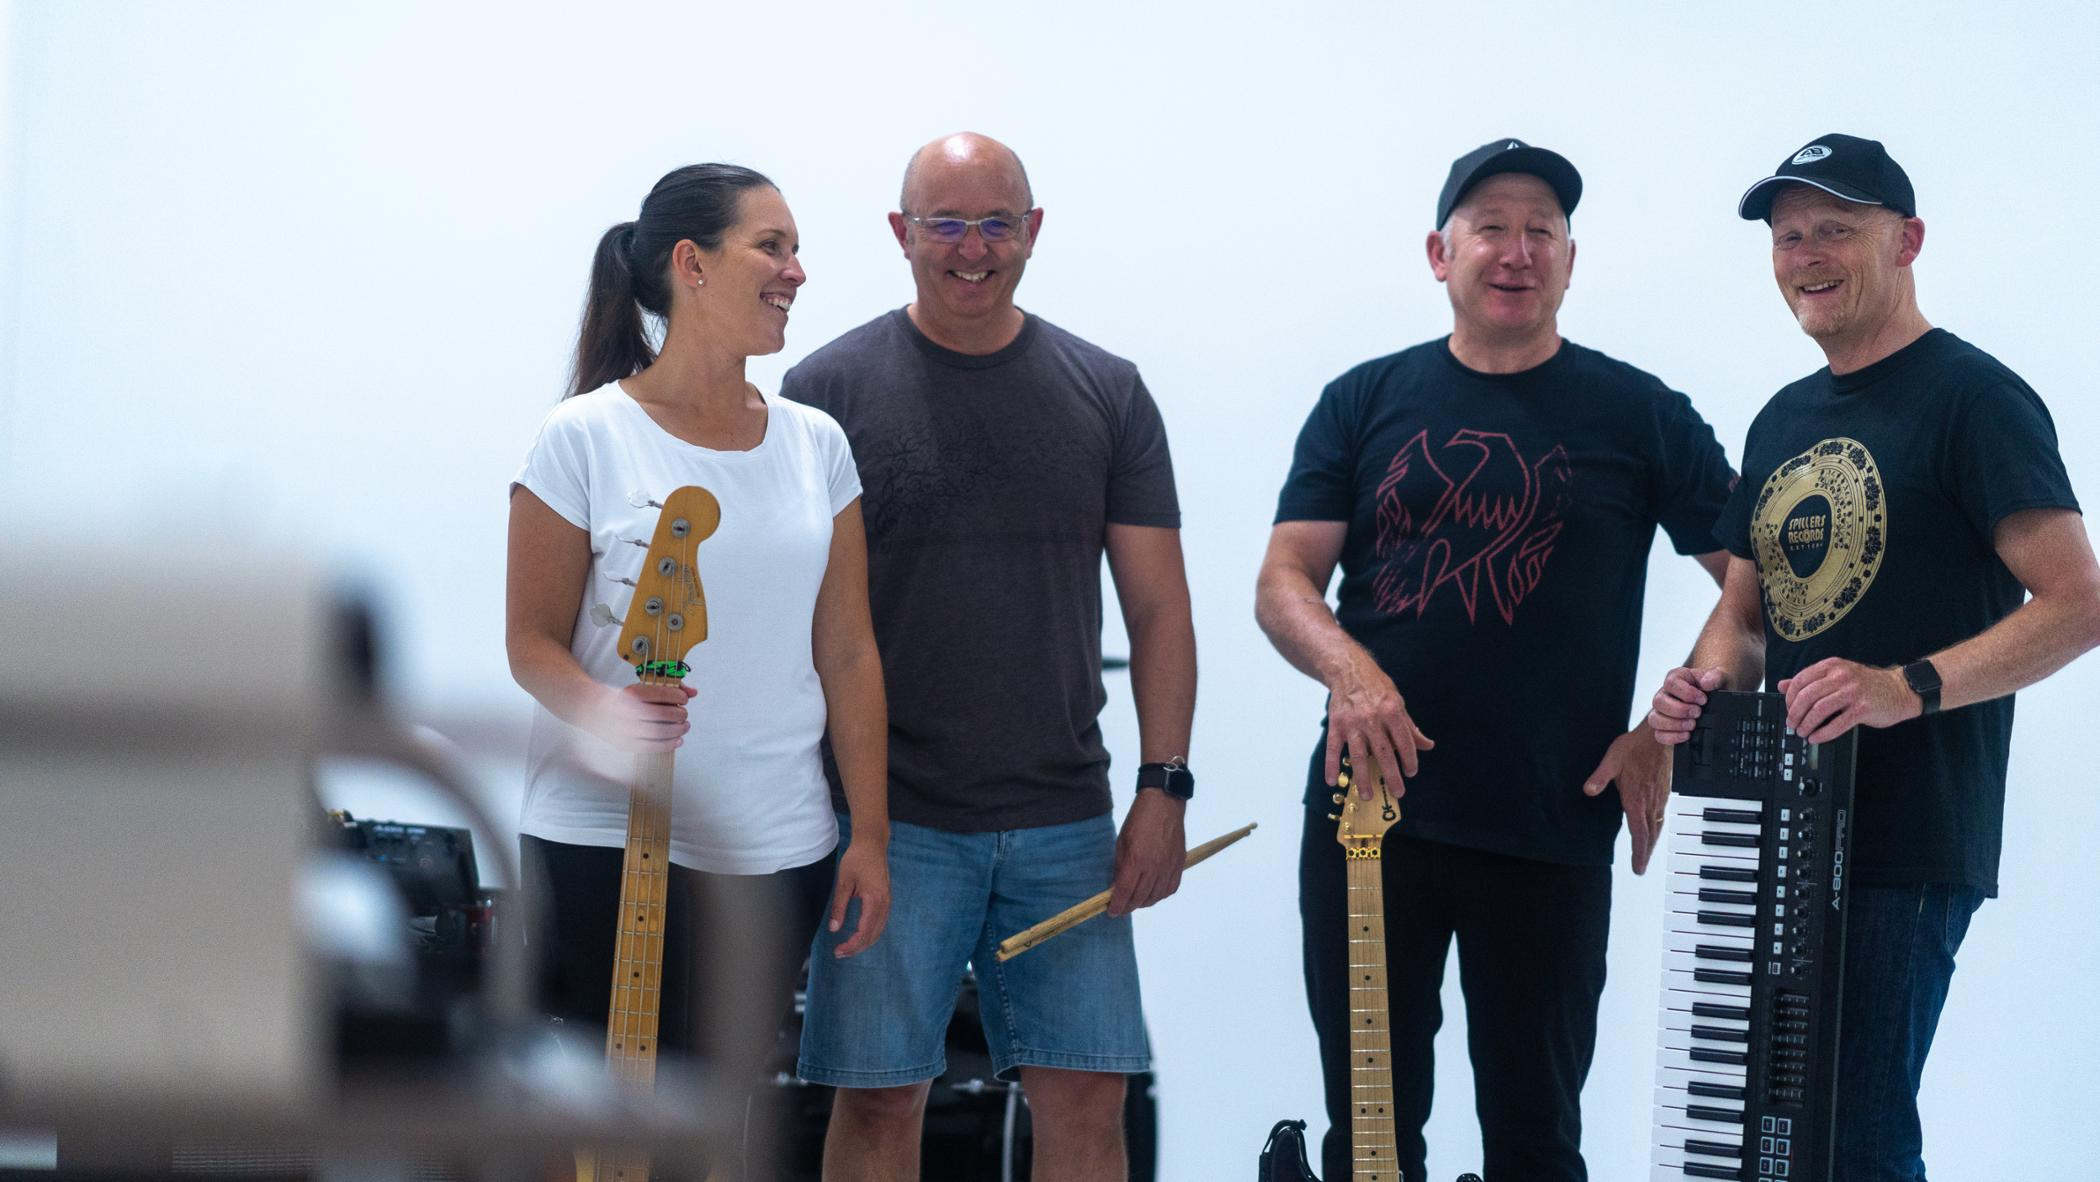 Established four piece Auckland cover band need to add lead vocalist